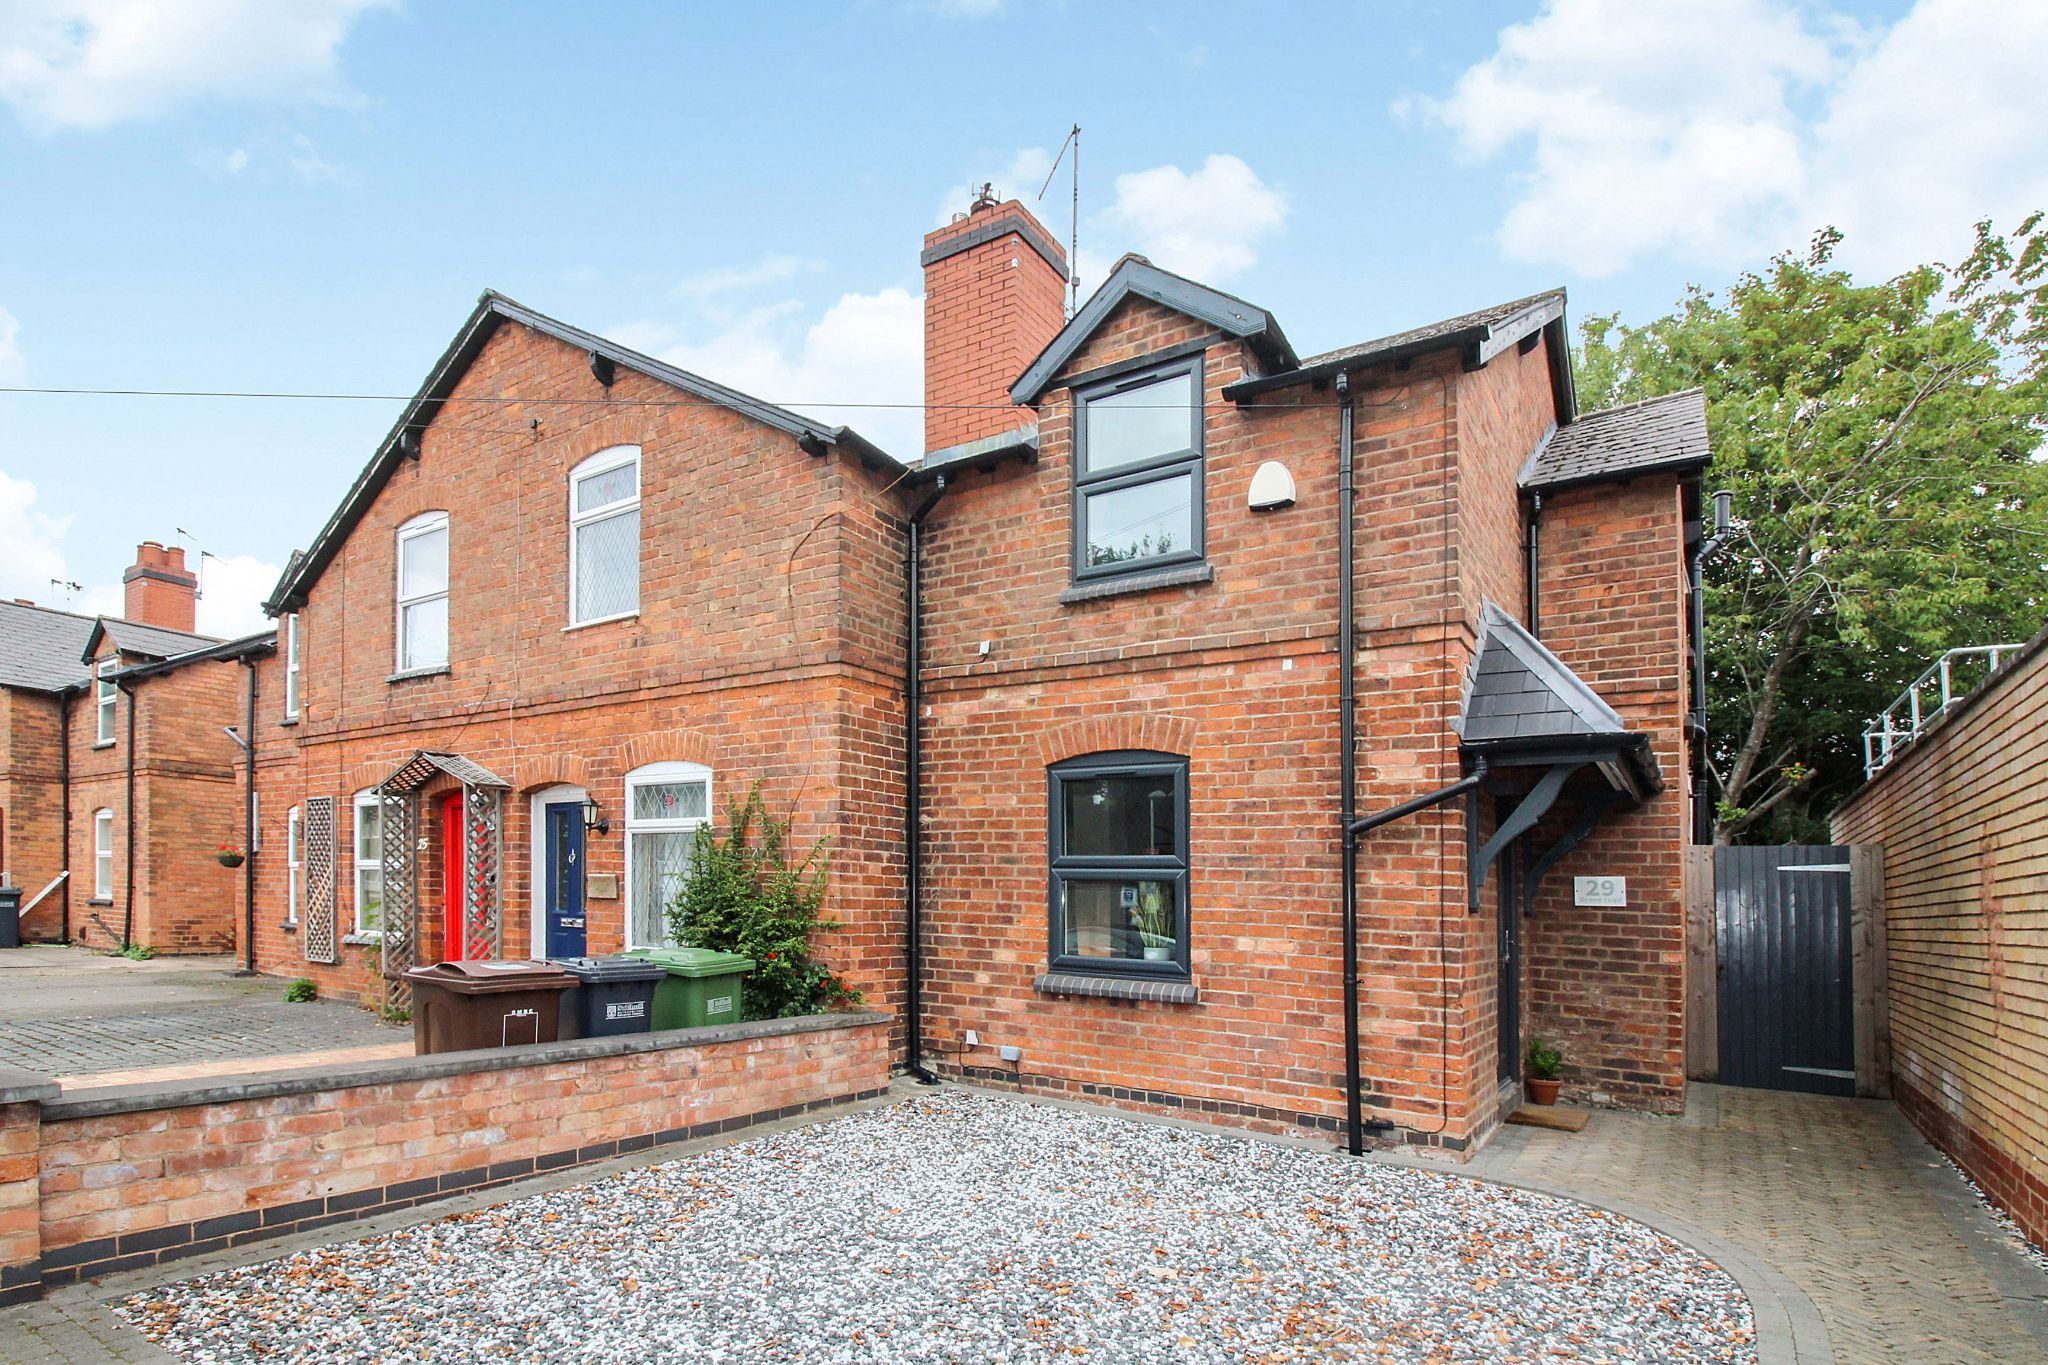 2 bedroom end terraced house For Sale in Solihull - Photograph 1.